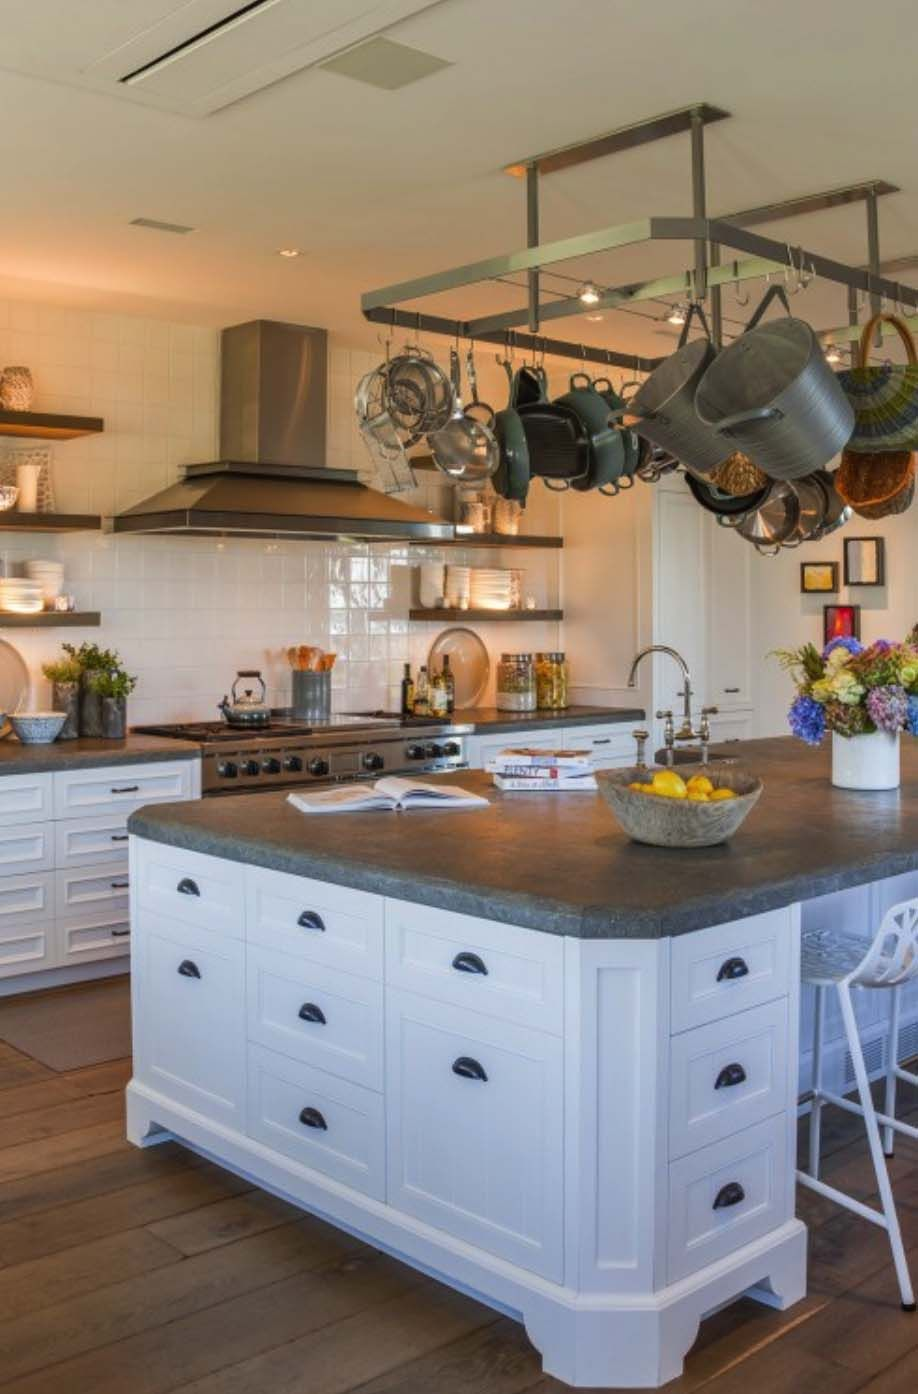 Cottage Style Kitchen Addition To A Cape Cod Style Home: Coastal Cottage Home With A Modern Twist In British Columbia